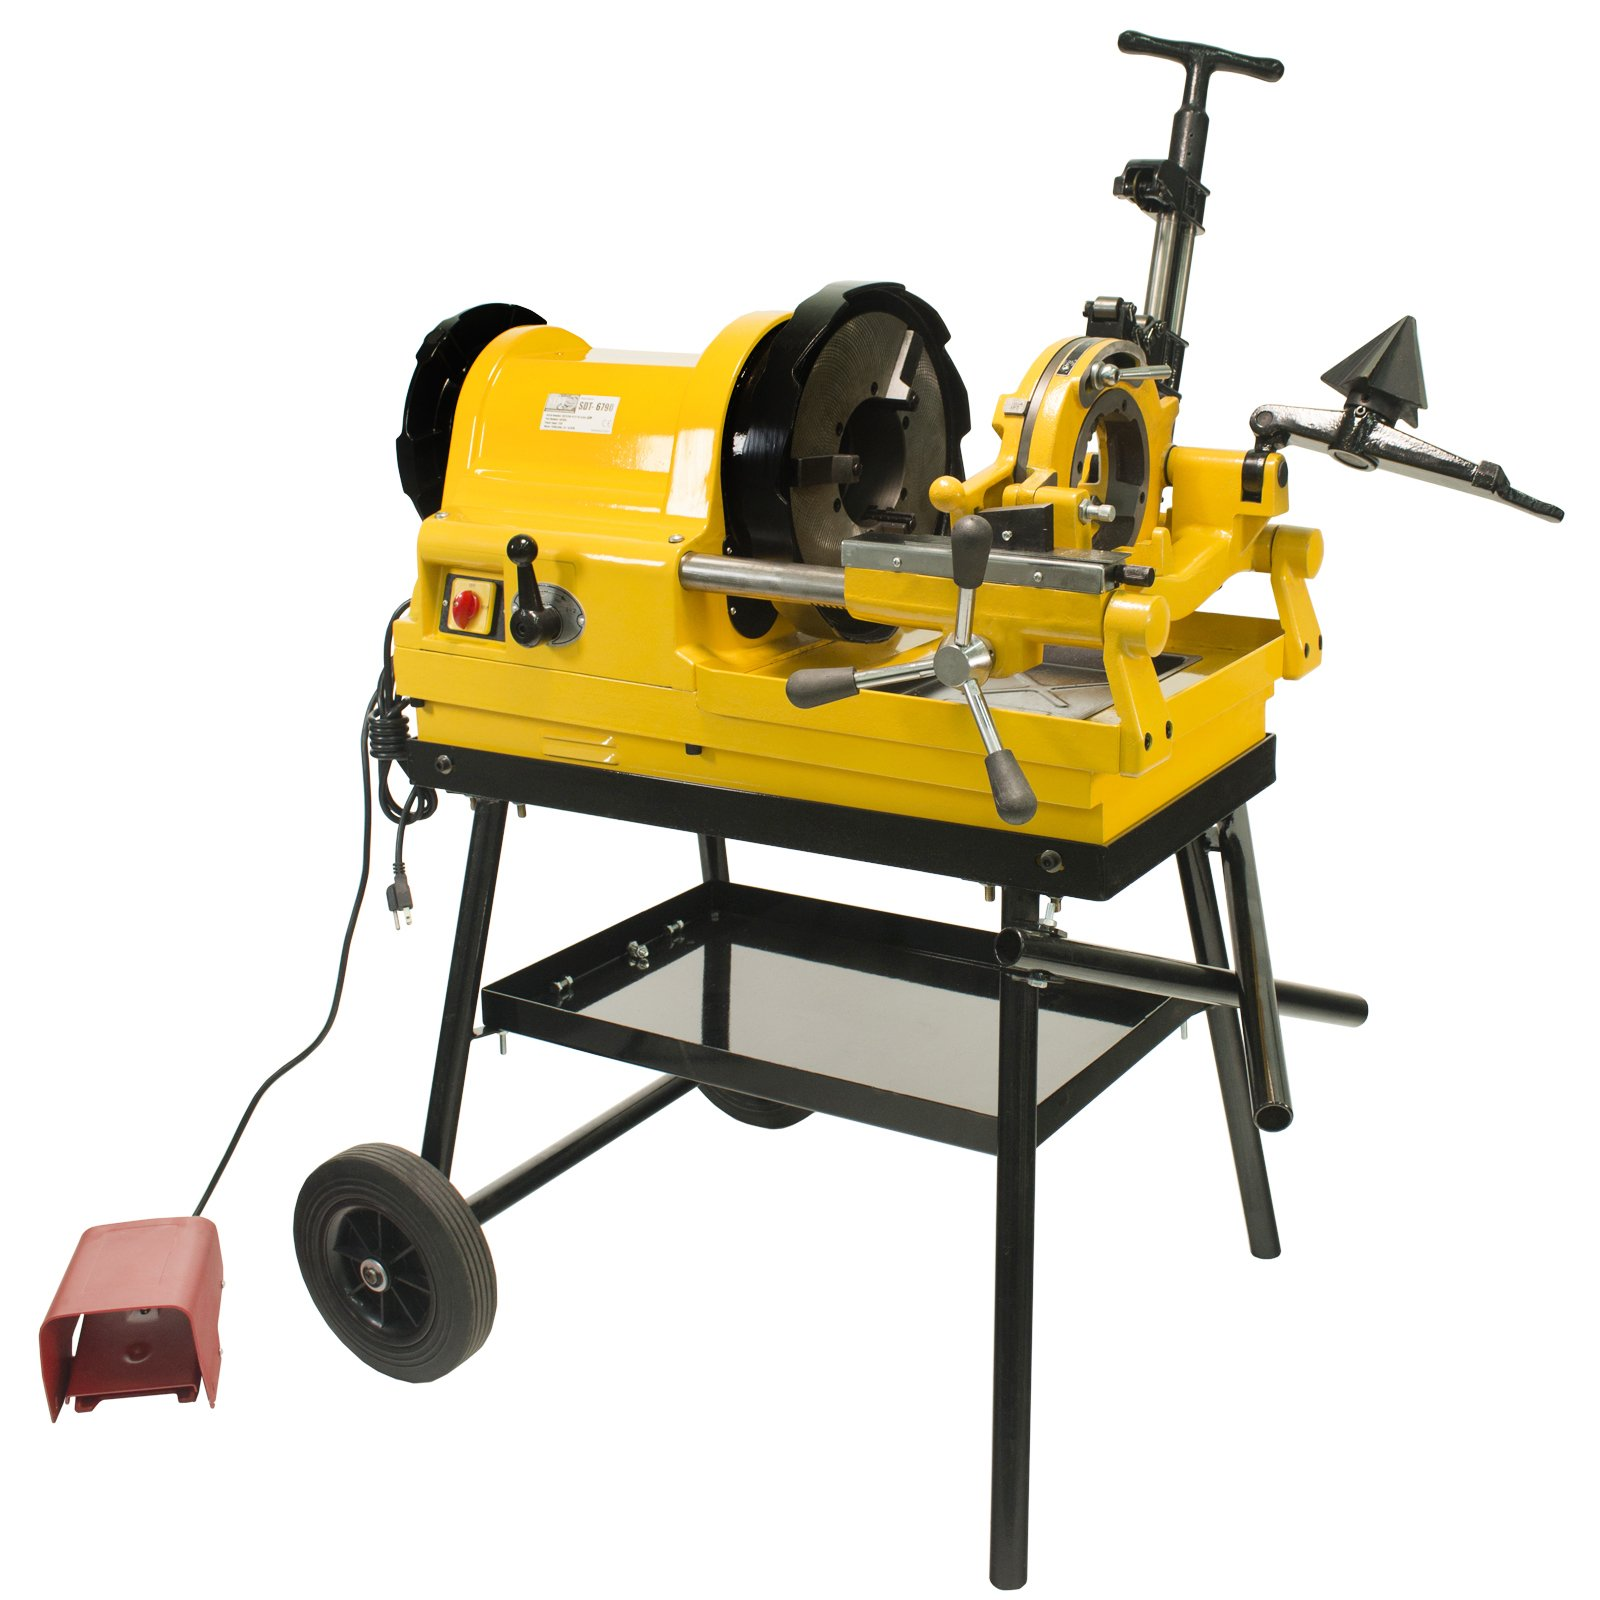 "Steel Dragon Tools 6790 Power Pipe Threader Threading Machine 1/2"" - 4"" Capacity with Foot Switch, Self-Oiling Die Head, and Cart"